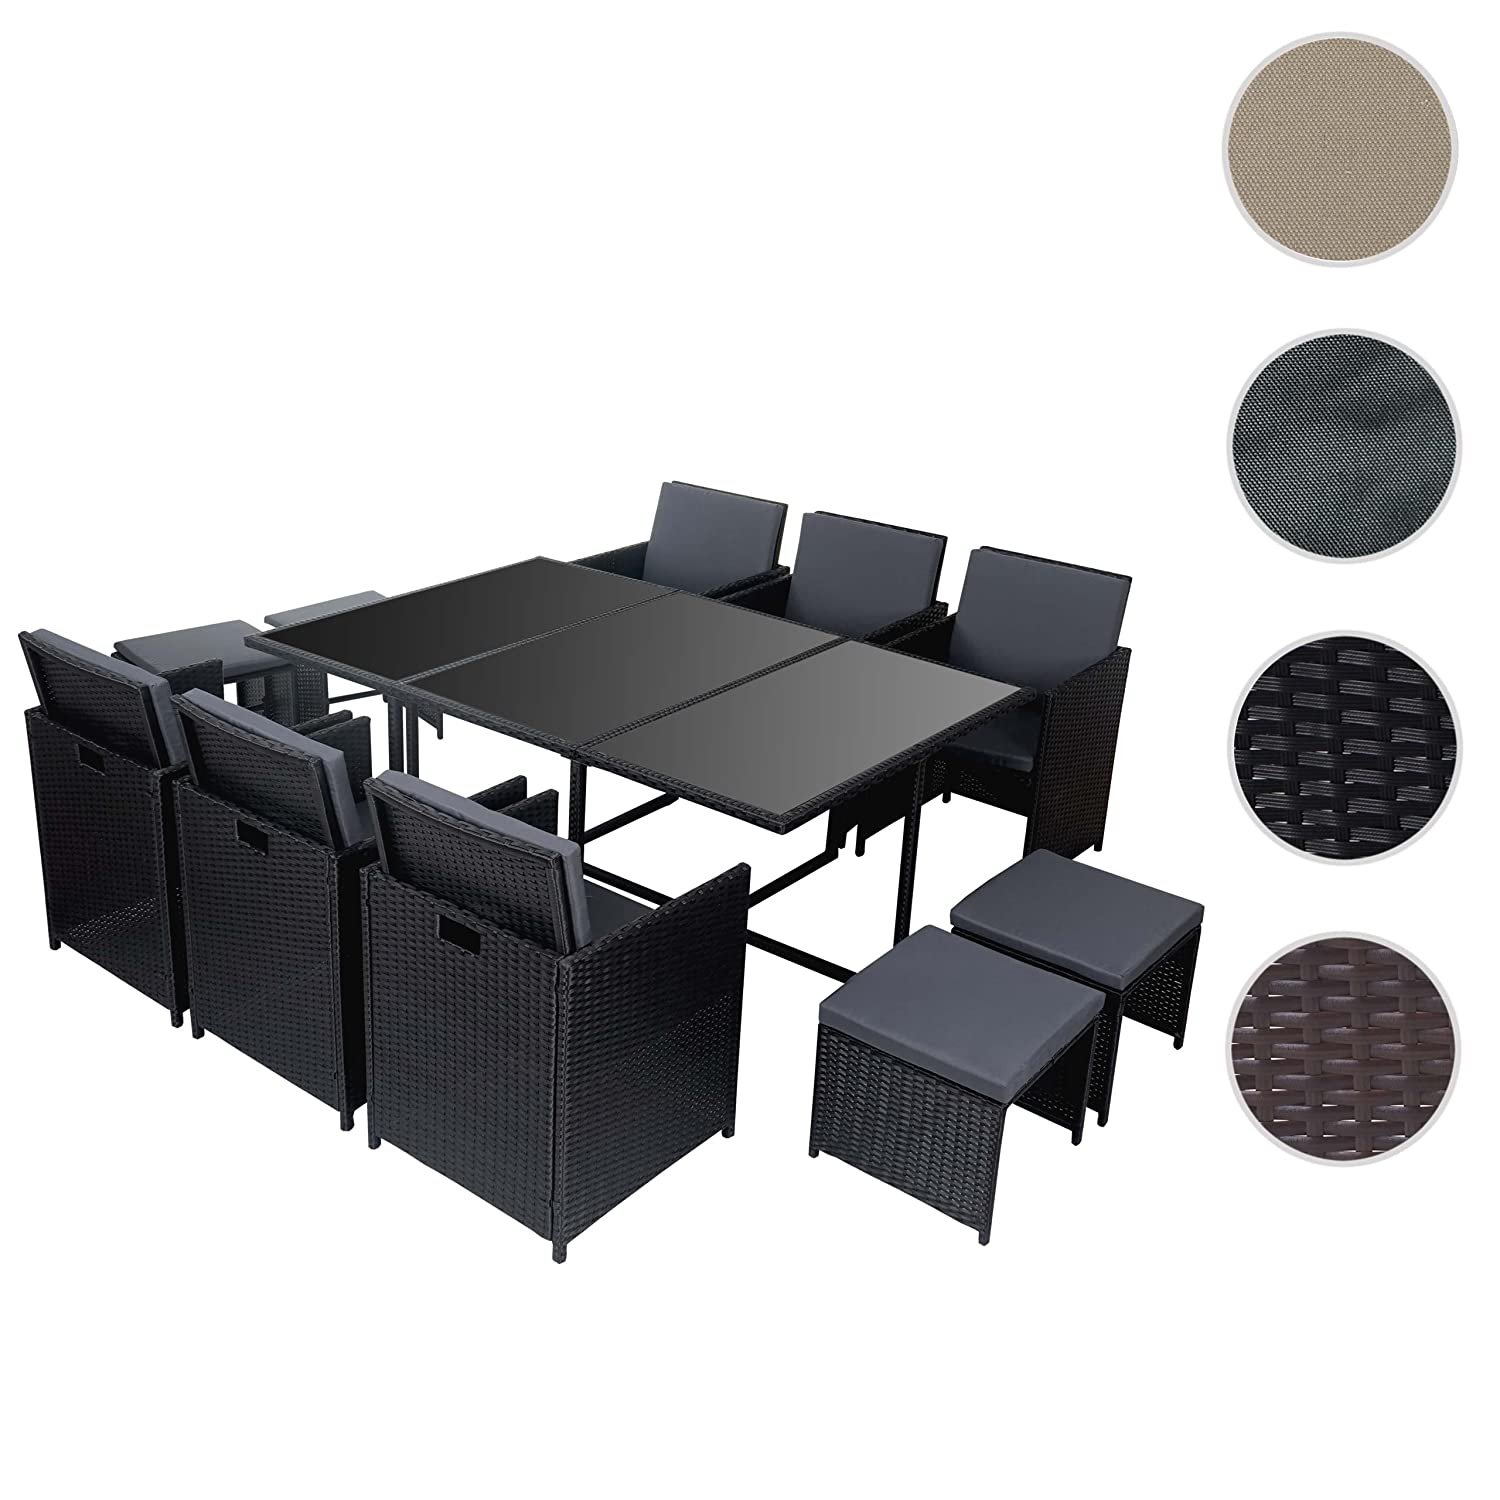 poly rattan garten garnitur kreta lounge set sitzgruppe 10 sitzpl tze schwarz kissen grau. Black Bedroom Furniture Sets. Home Design Ideas